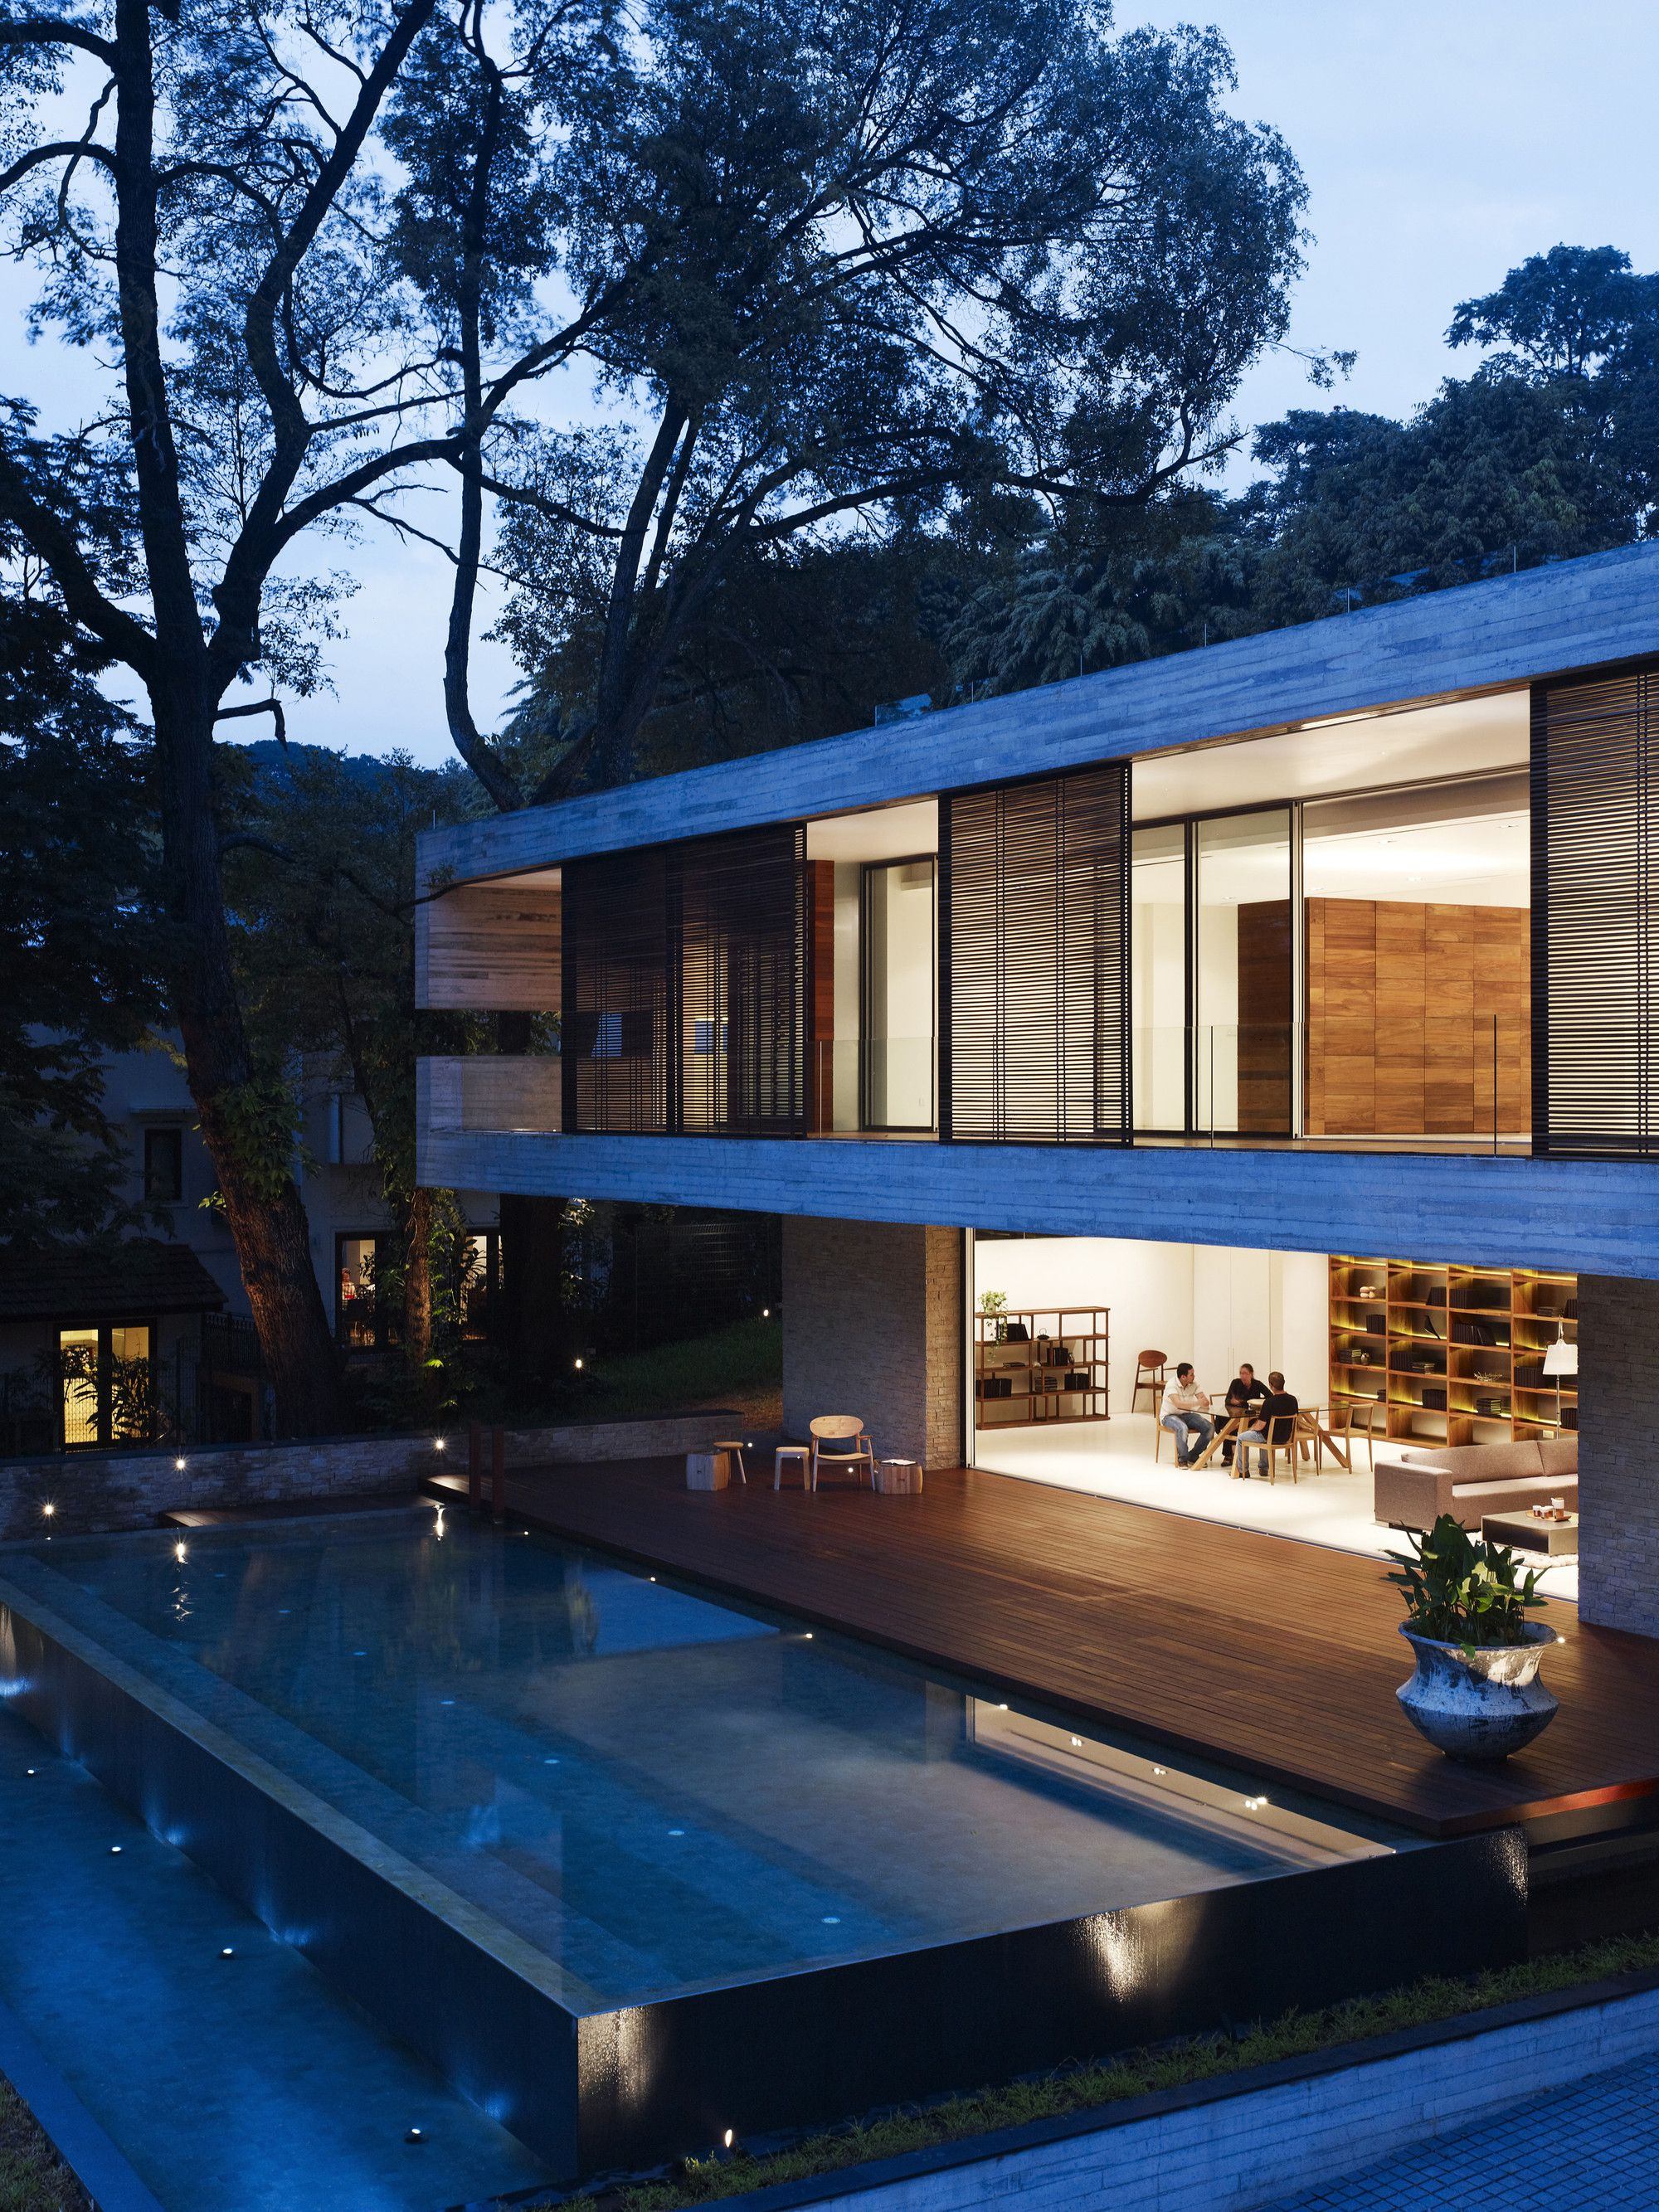 Gallery of JKC1 / Ong&Ong Architects - 12